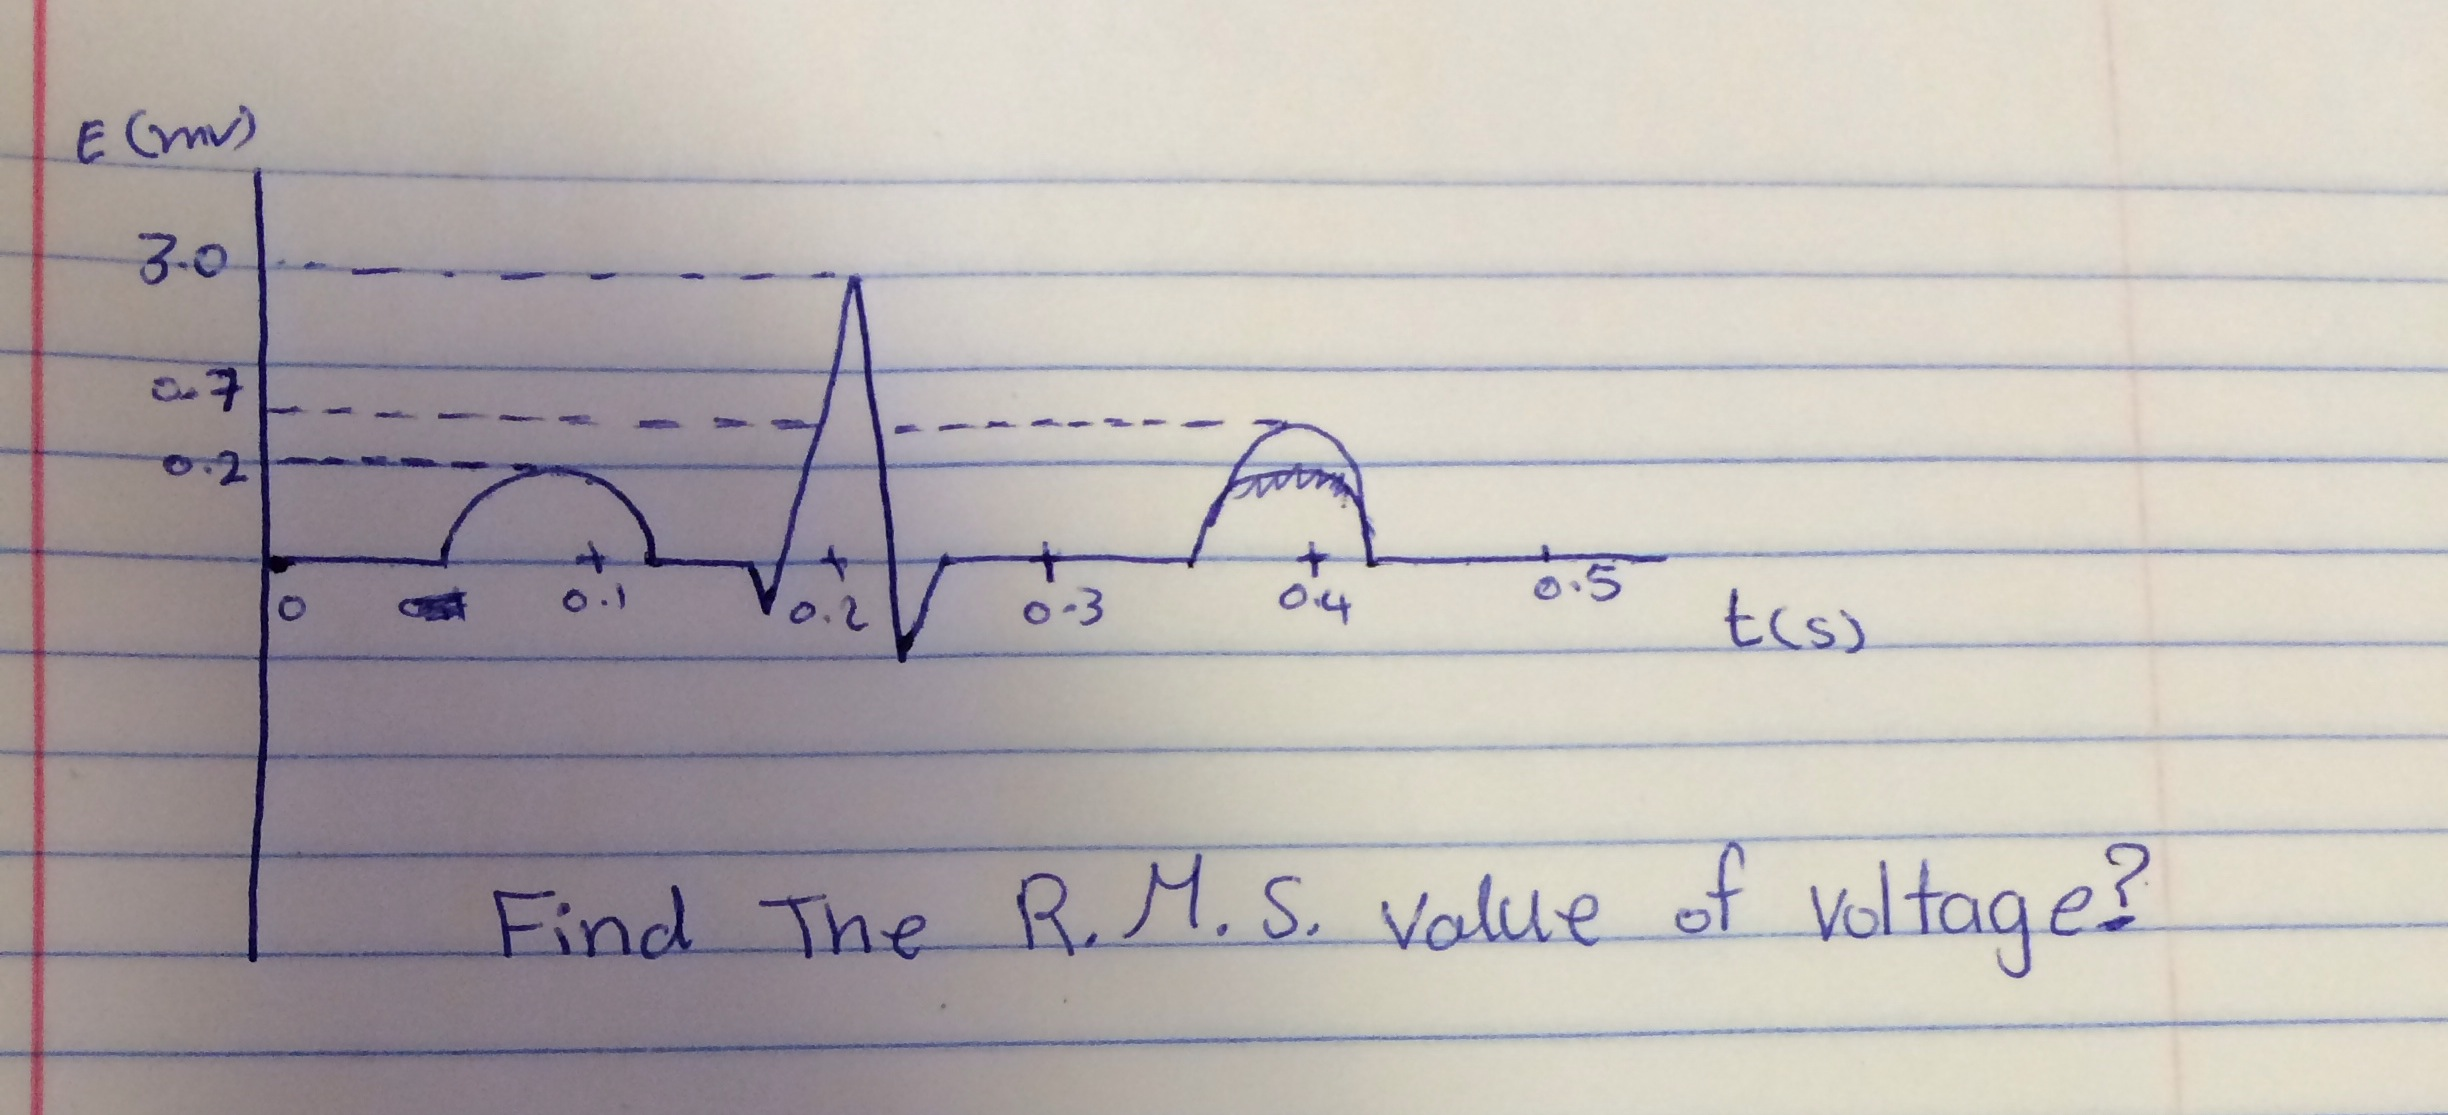 Find the RMS value of voltage?